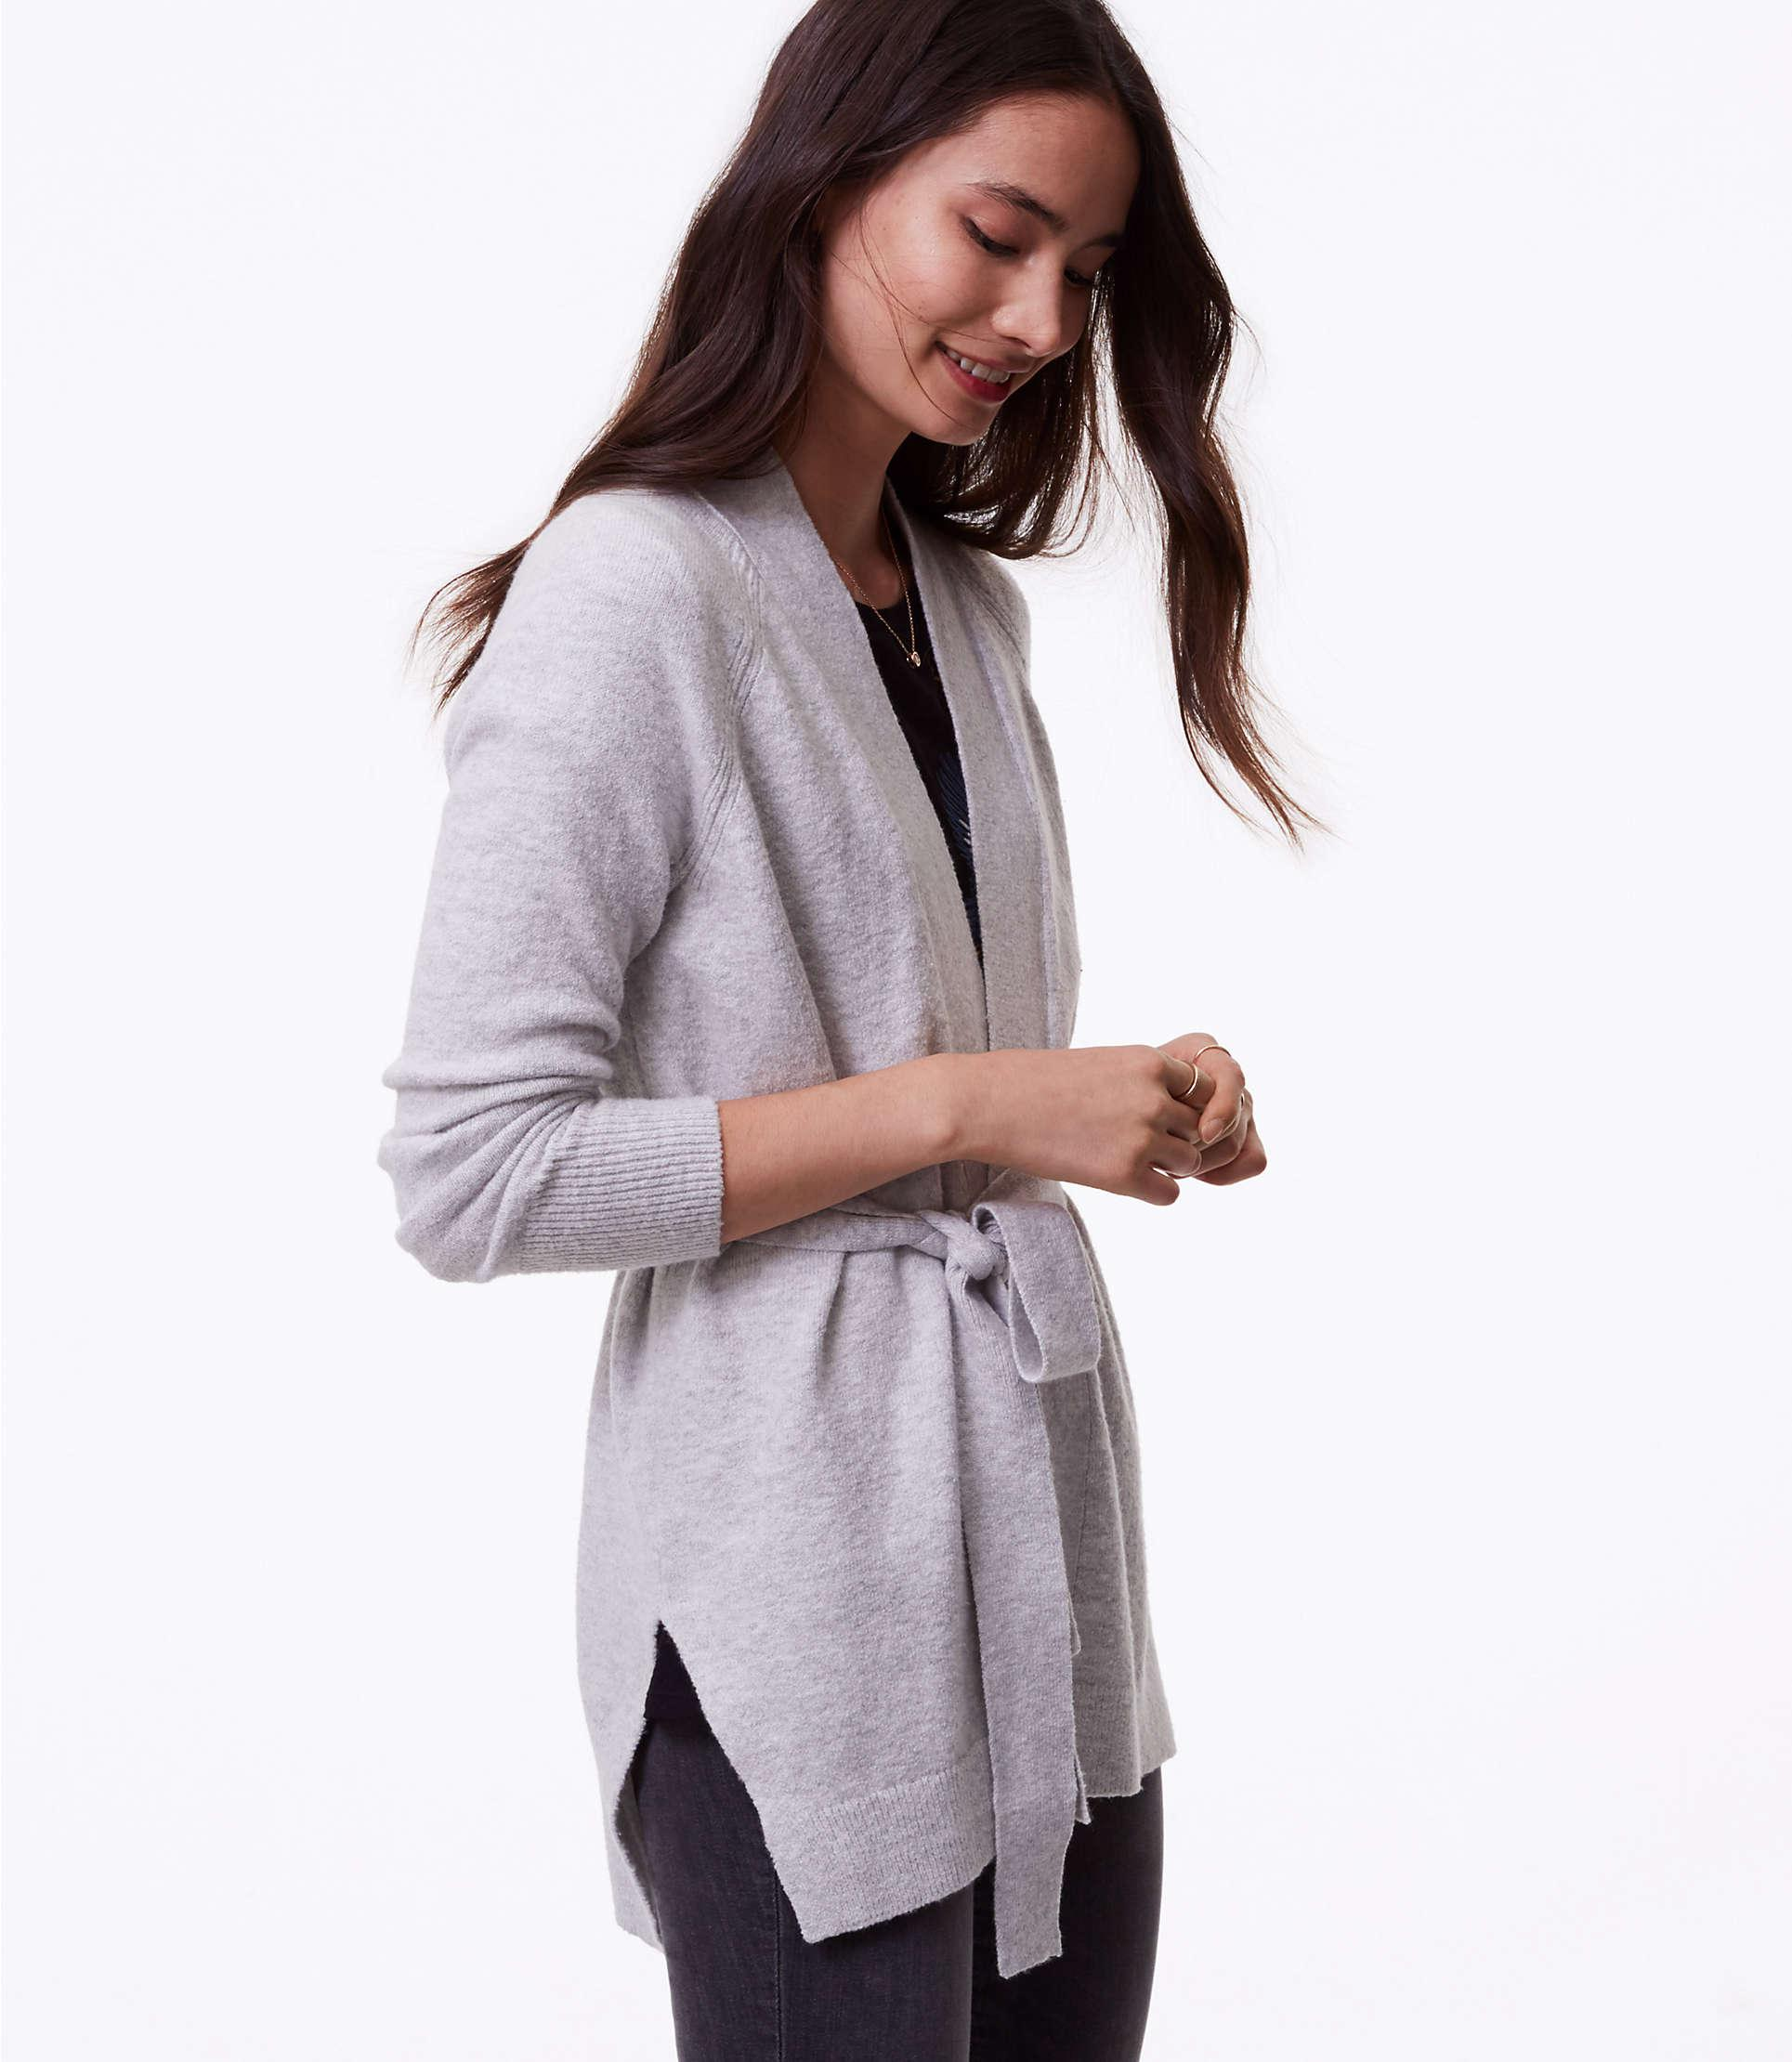 577961208d02 Lyst - LOFT Seamed Belted Cardigan in Gray